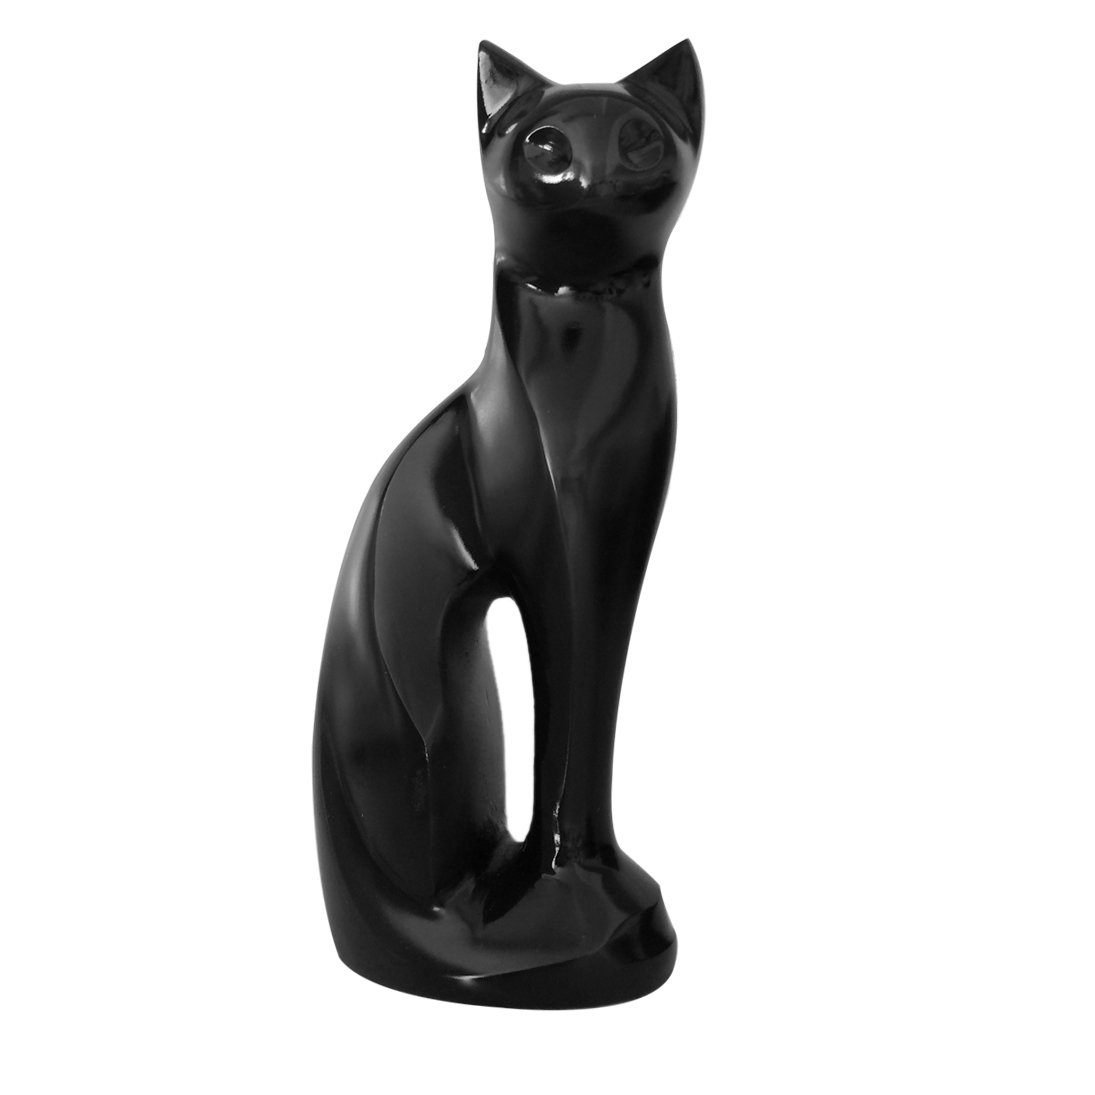 Midnight Sitting Cat Cremation Memorial Urn For Cat Ashes